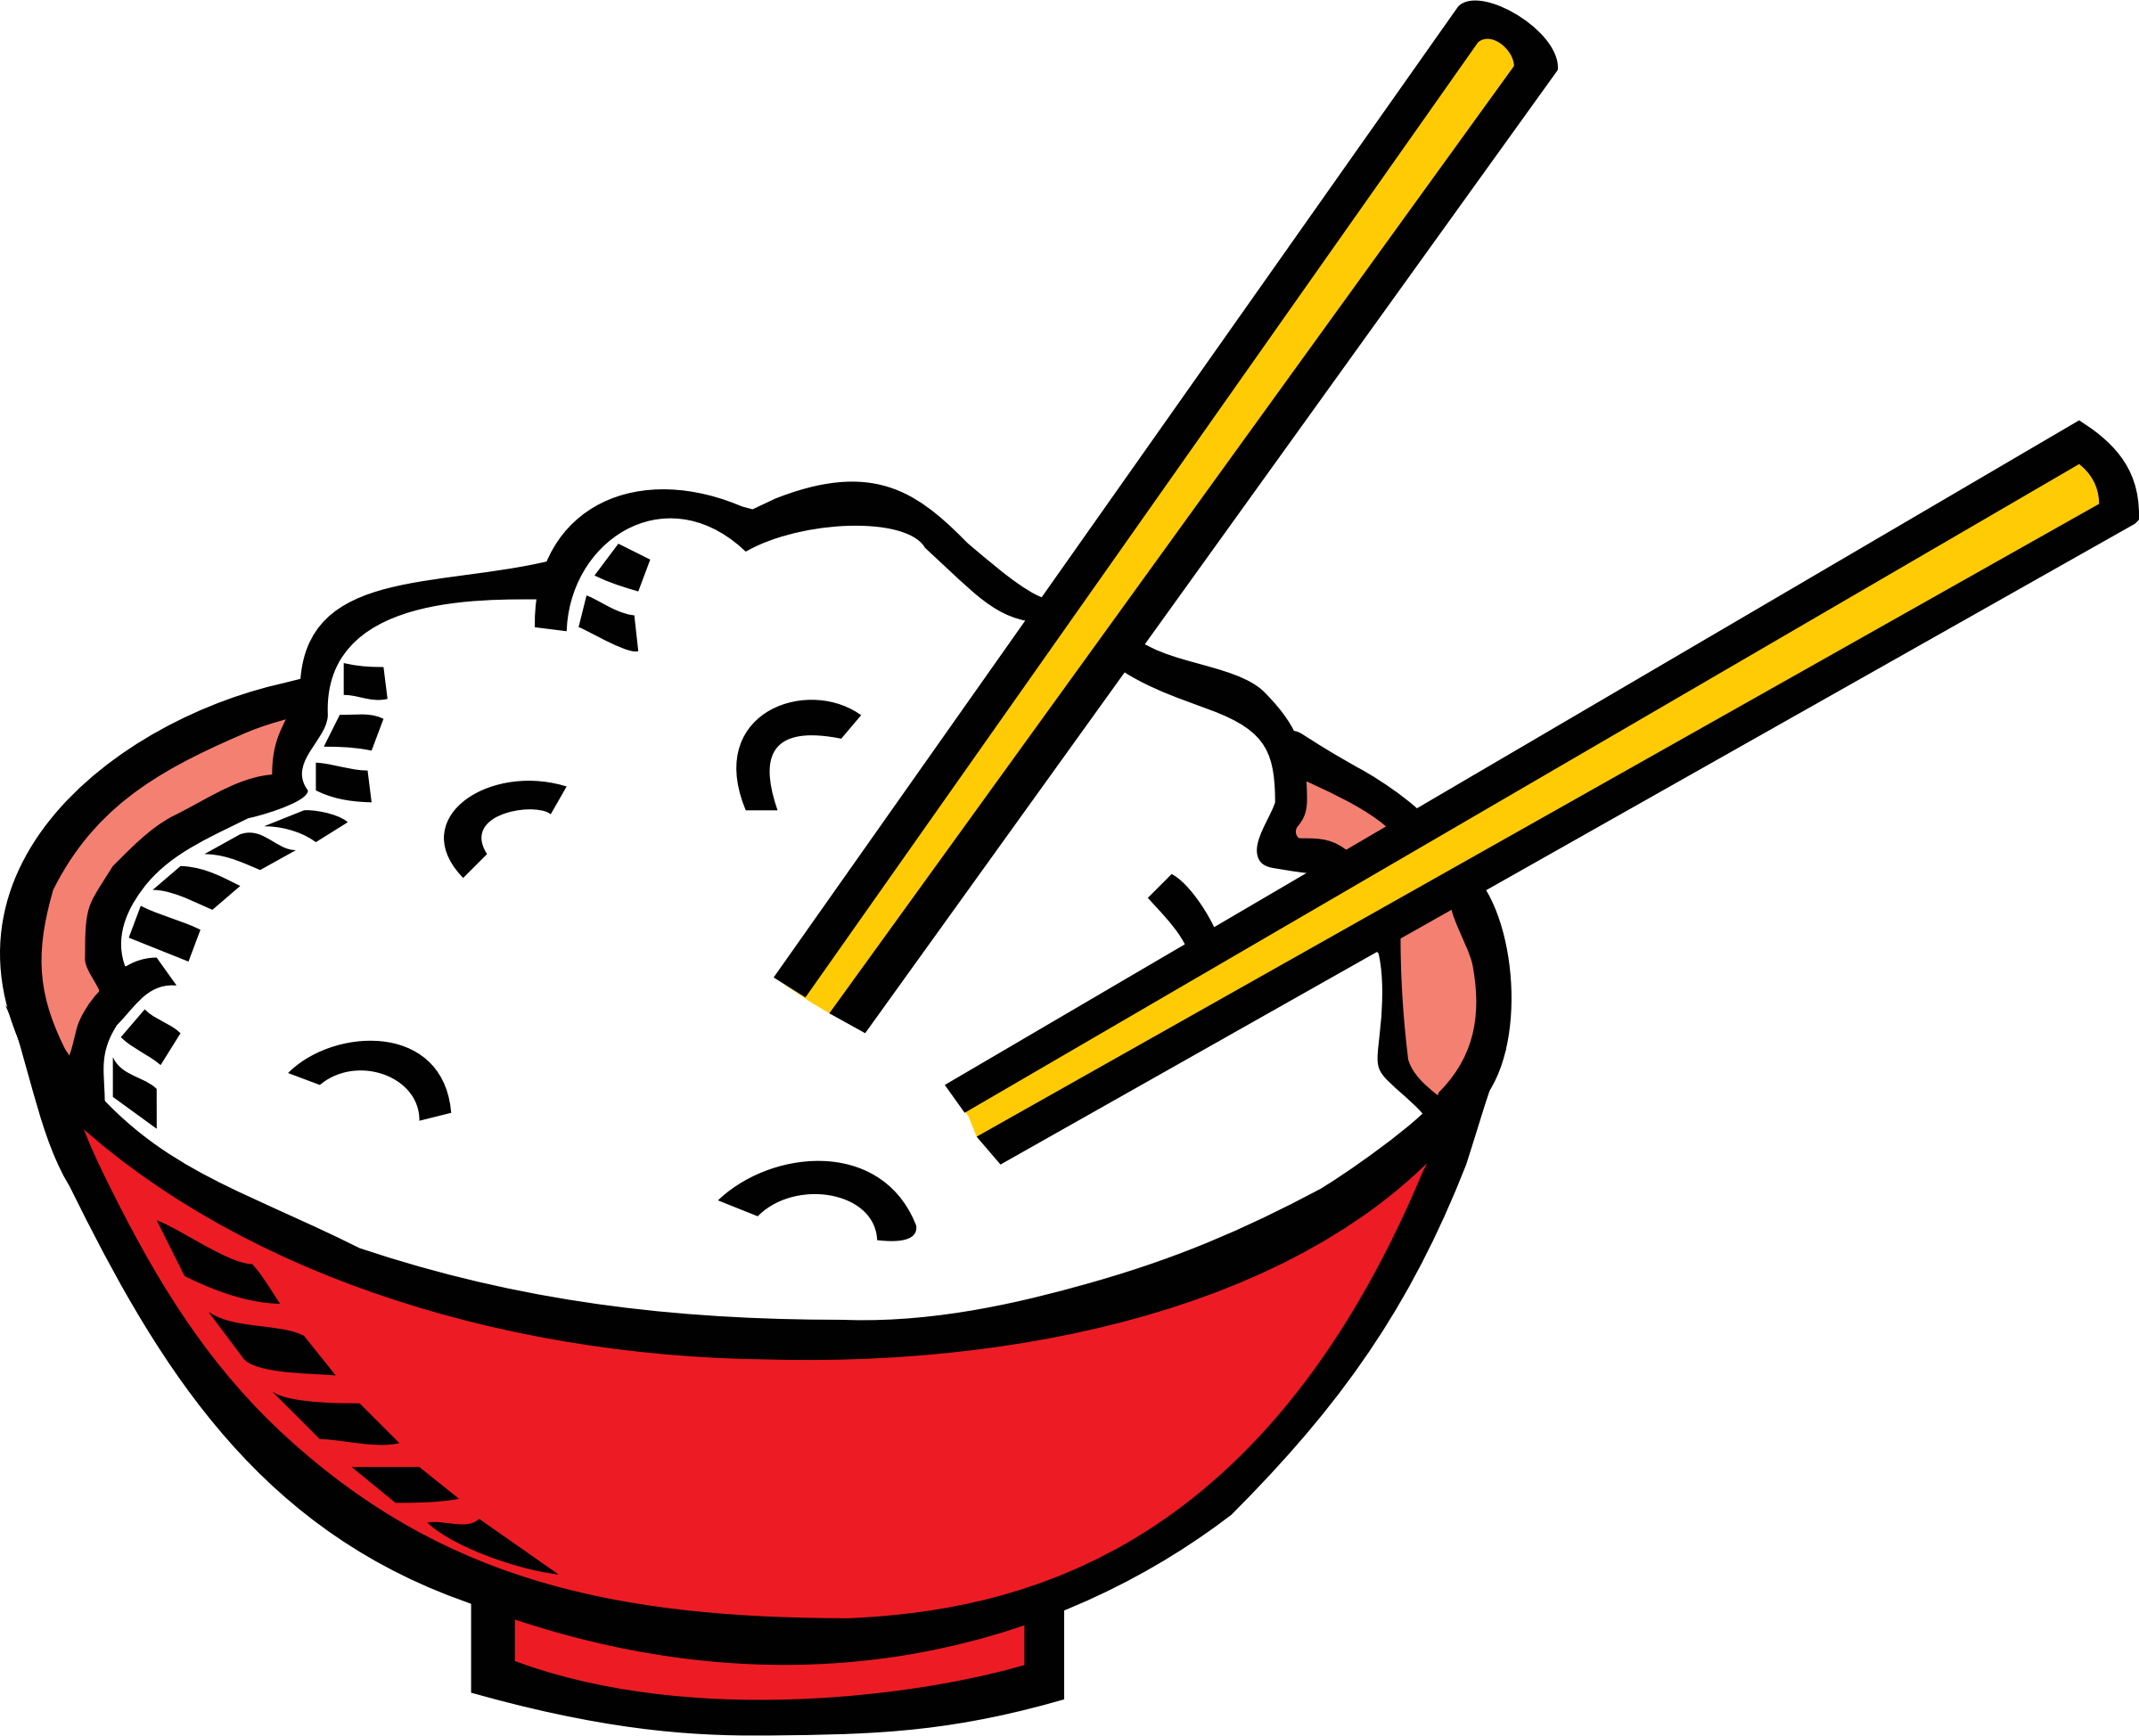 clipart free download Free cliparts download clip. Chopsticks clipart.